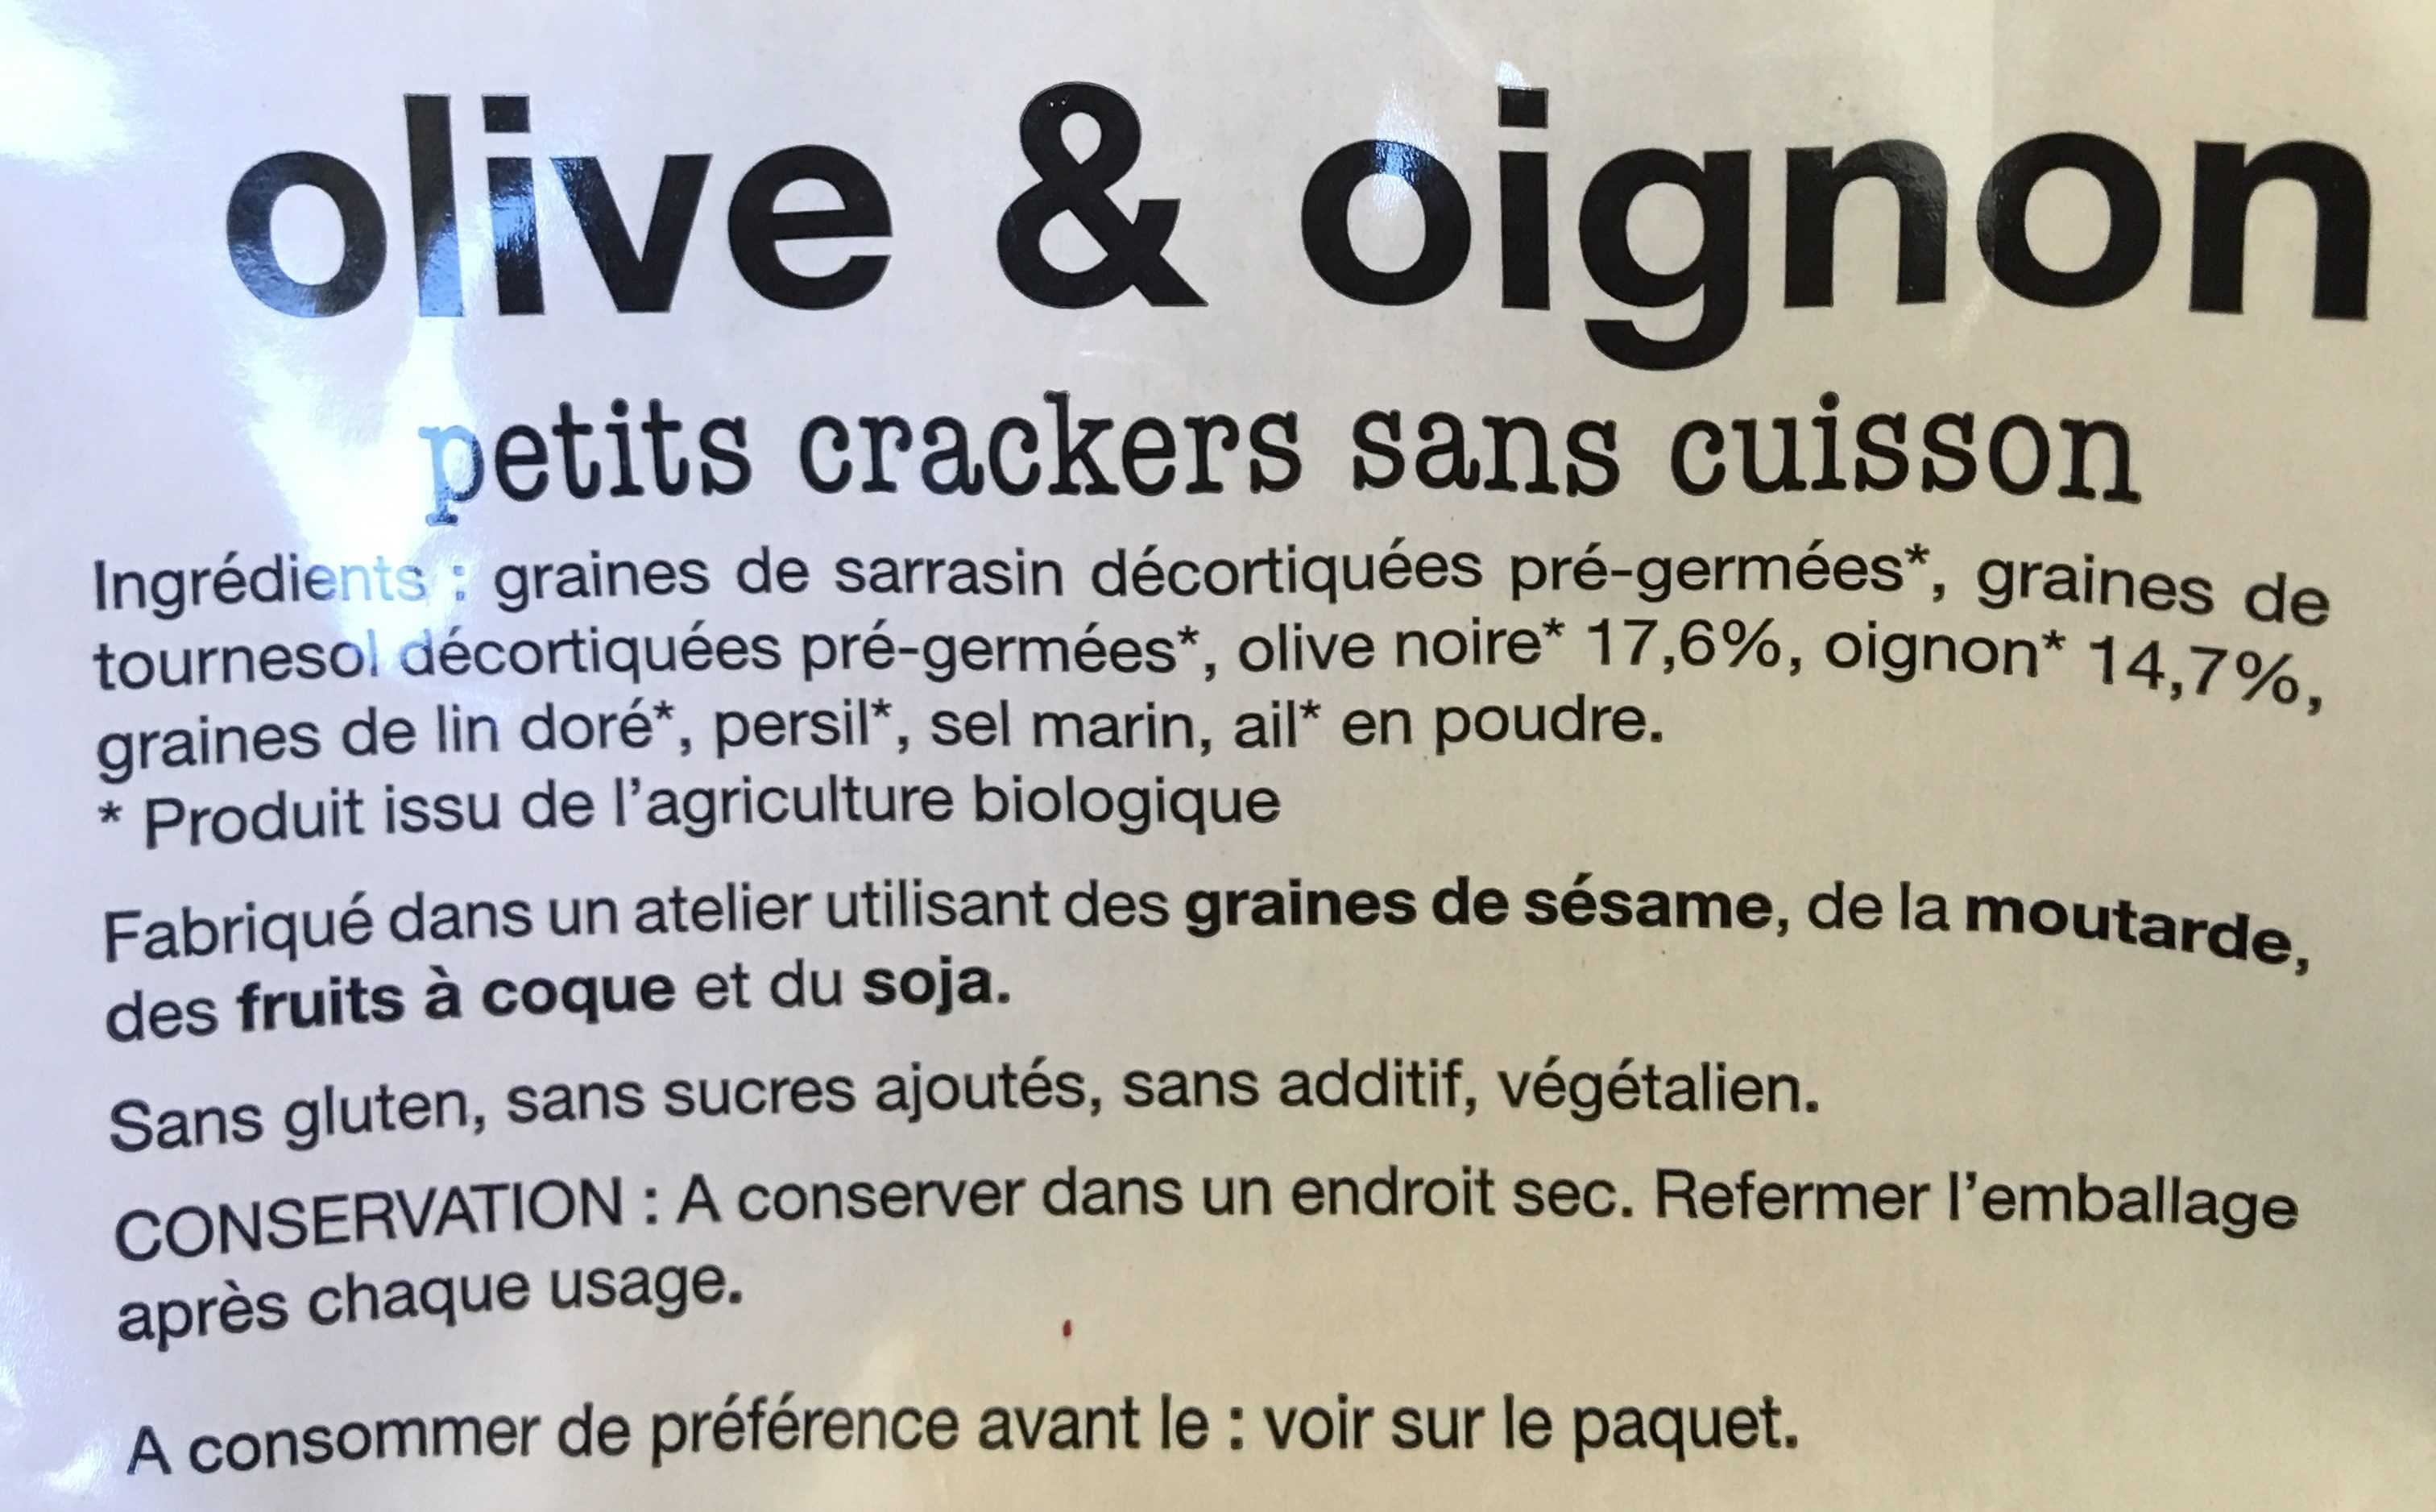 Petits crackers sans cuisson Olives & Oignon - Ingredients